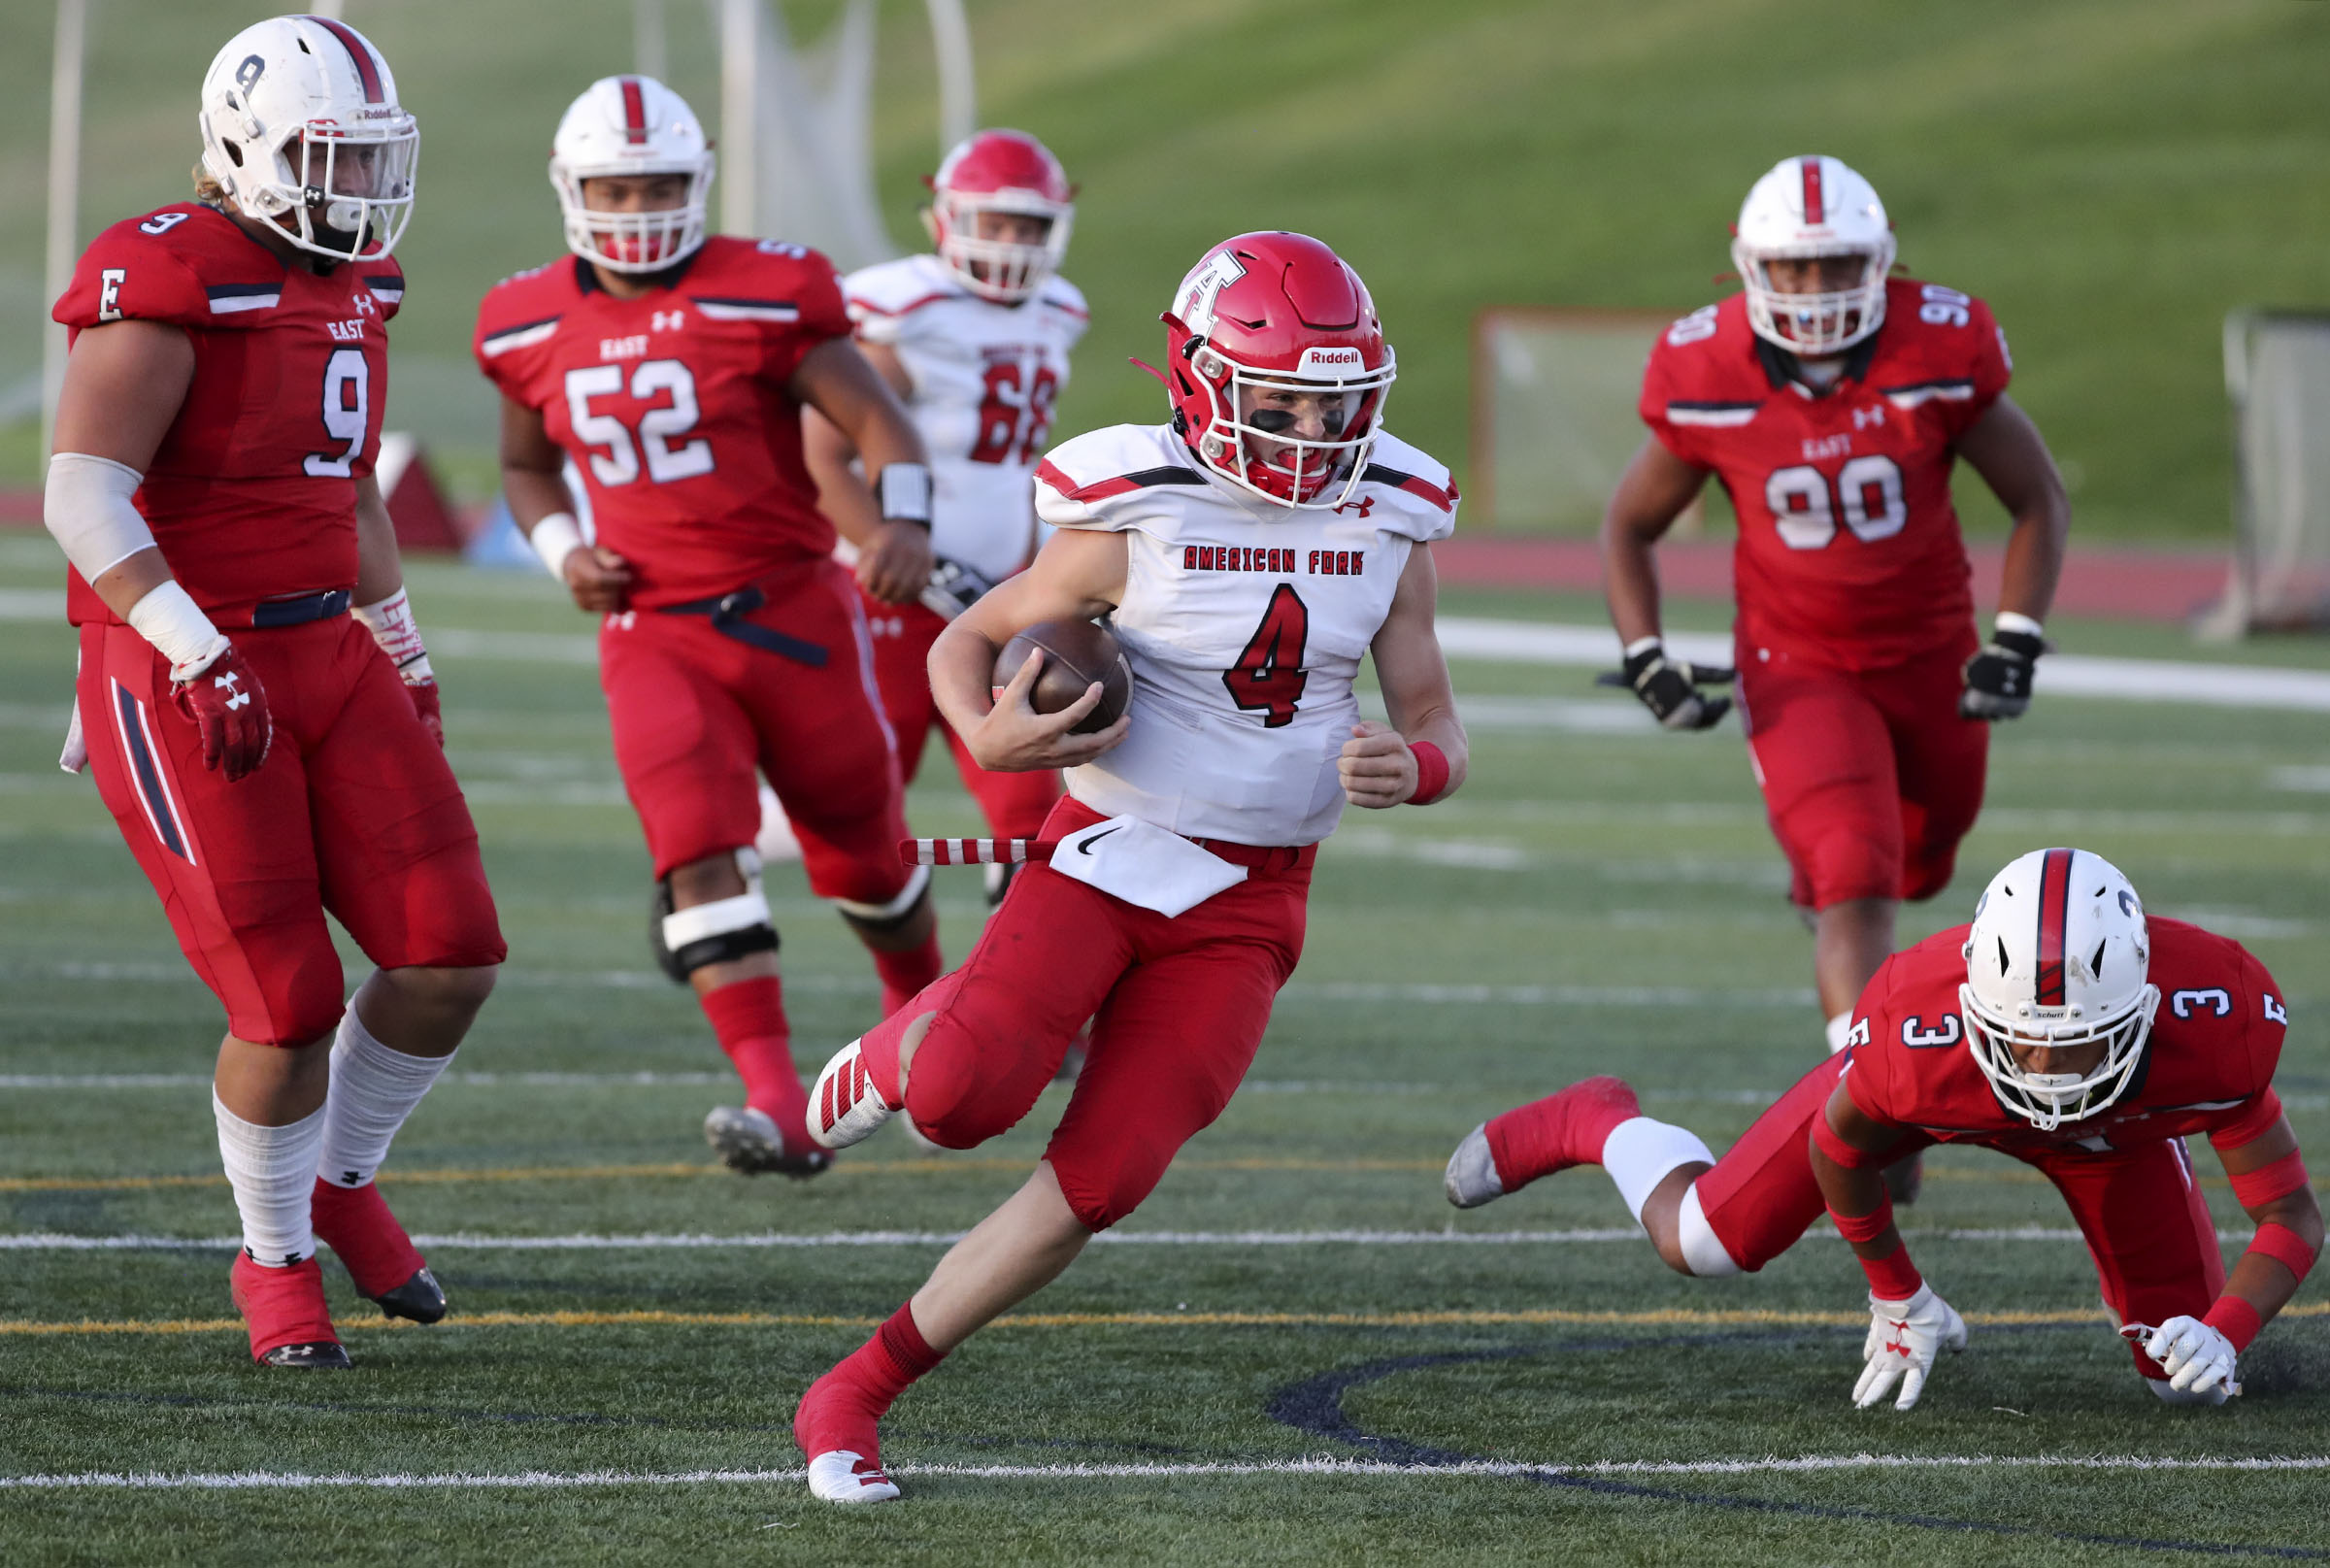 American Fork's Maddux Madsen runs with the ball during a football game against East High School at East High School in Salt Lake City on Friday, Sept. 6, 2019.